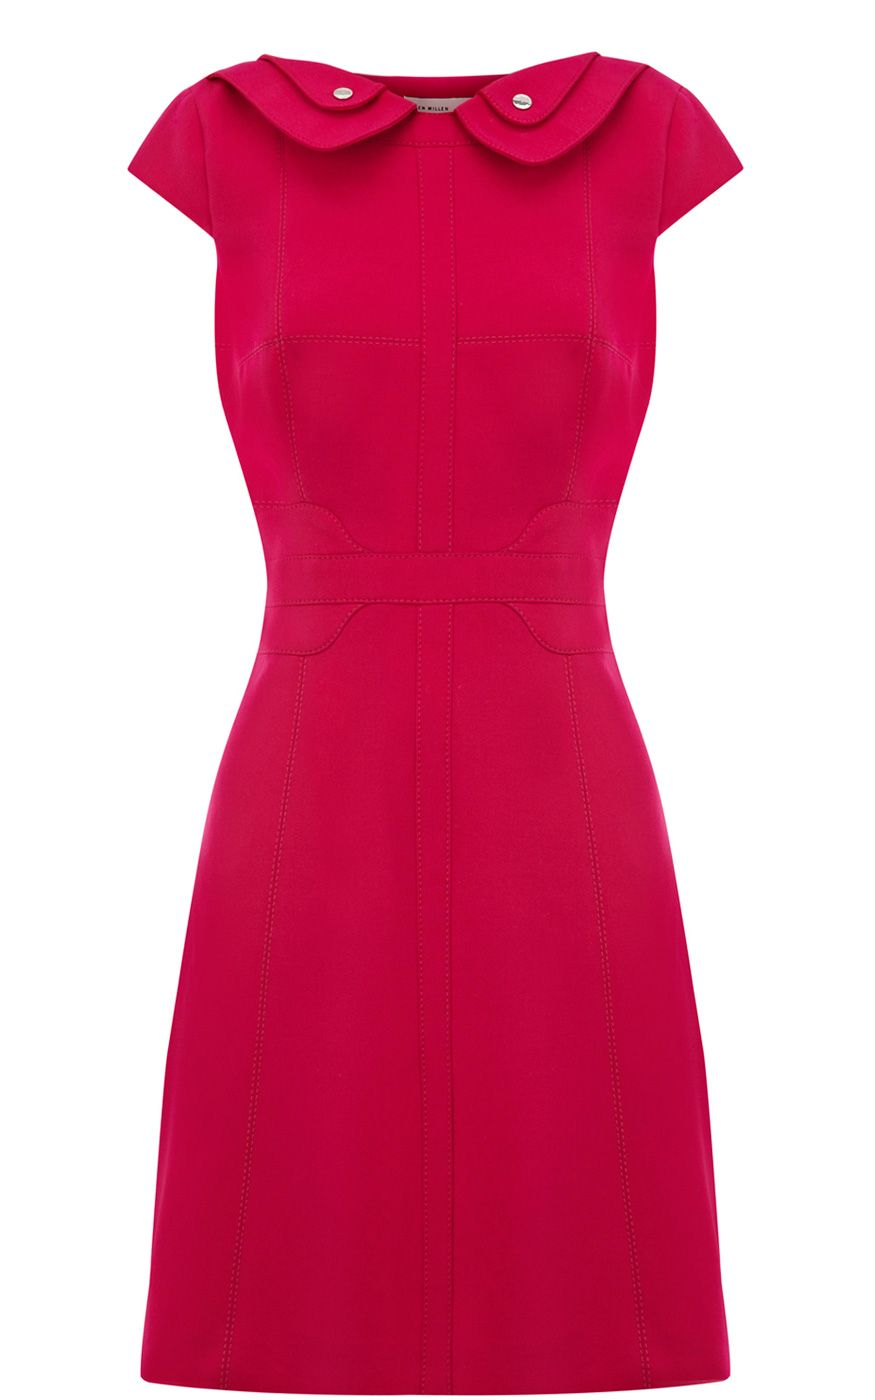 90bad2cd58 Karen Millen Colourful tailored dress red [DN158] : Karen Millen dresses  sale,Discount Karen Millen dress,Karen Millen UK online store ...